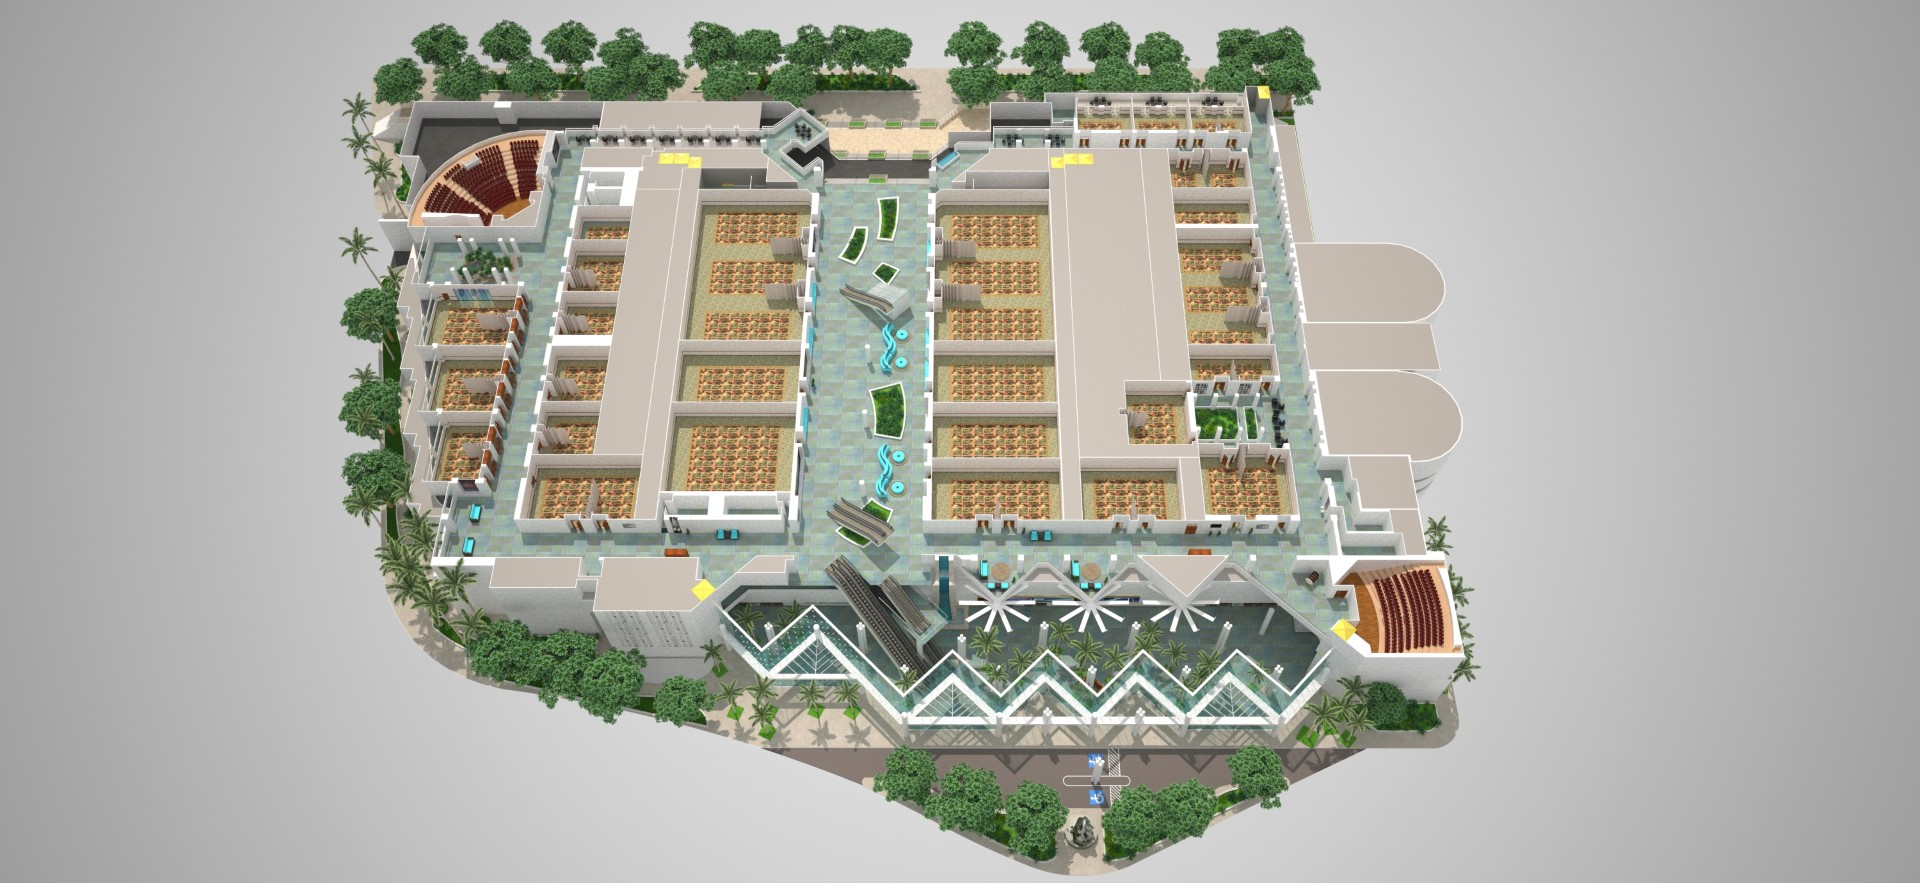 Floor Plans and Schematics for the Hawaii Convention Center on